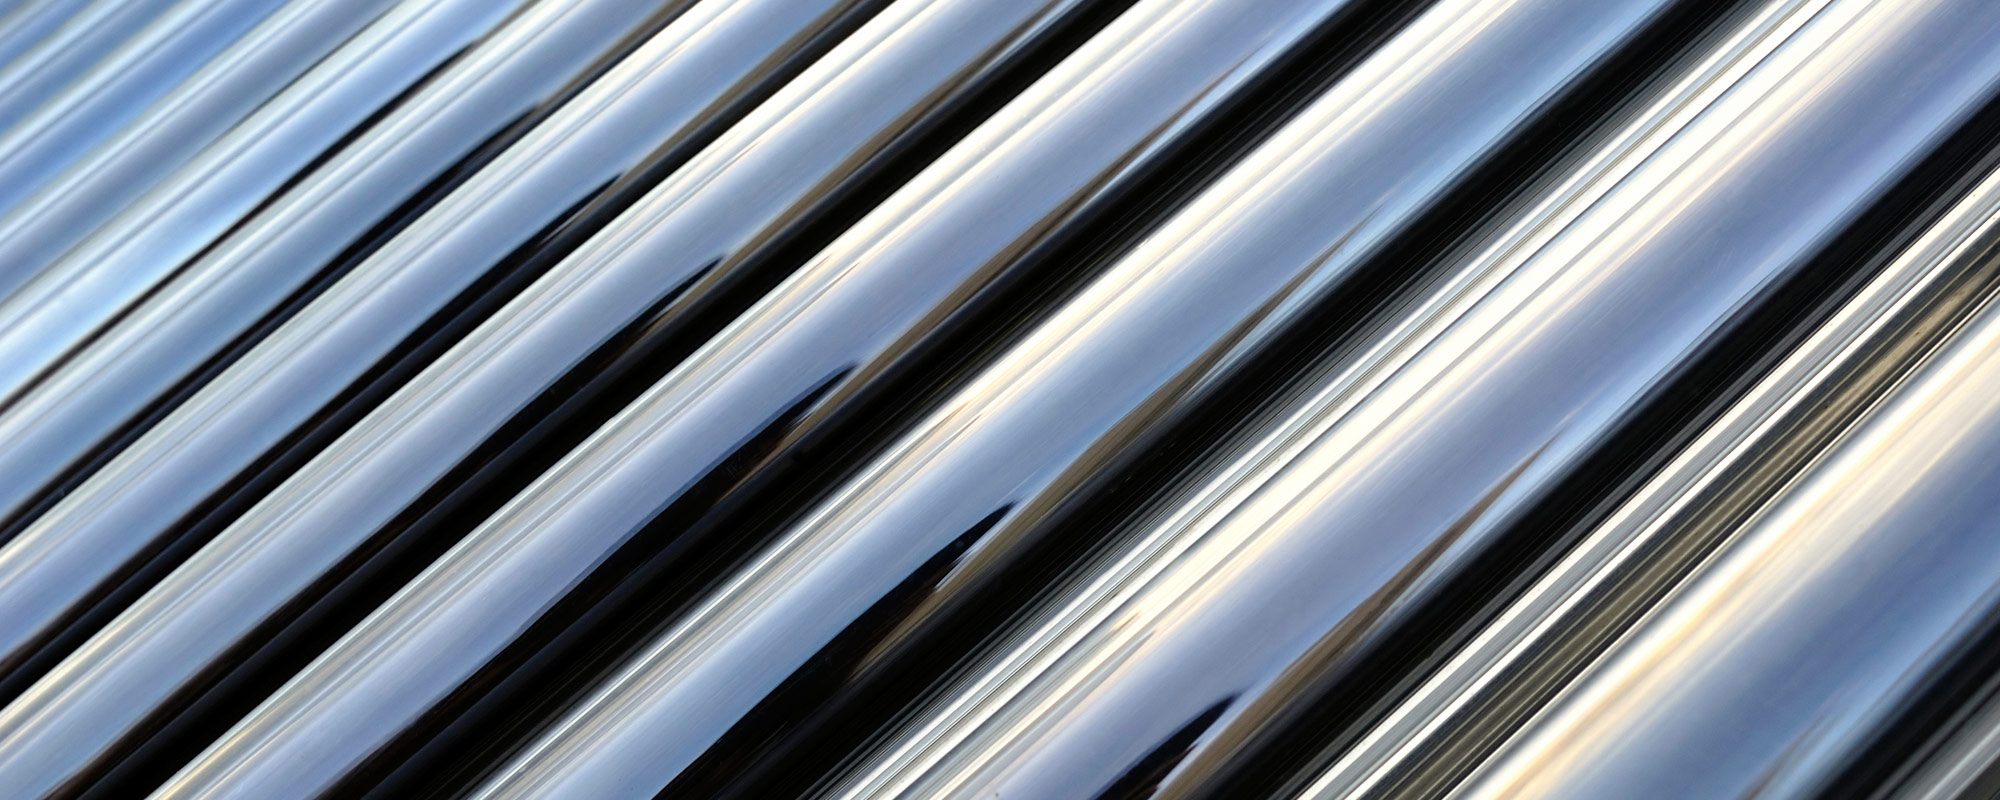 Silver Steel Bar - West Yorkshire Steel - Fully ISO 9001 ... Steel